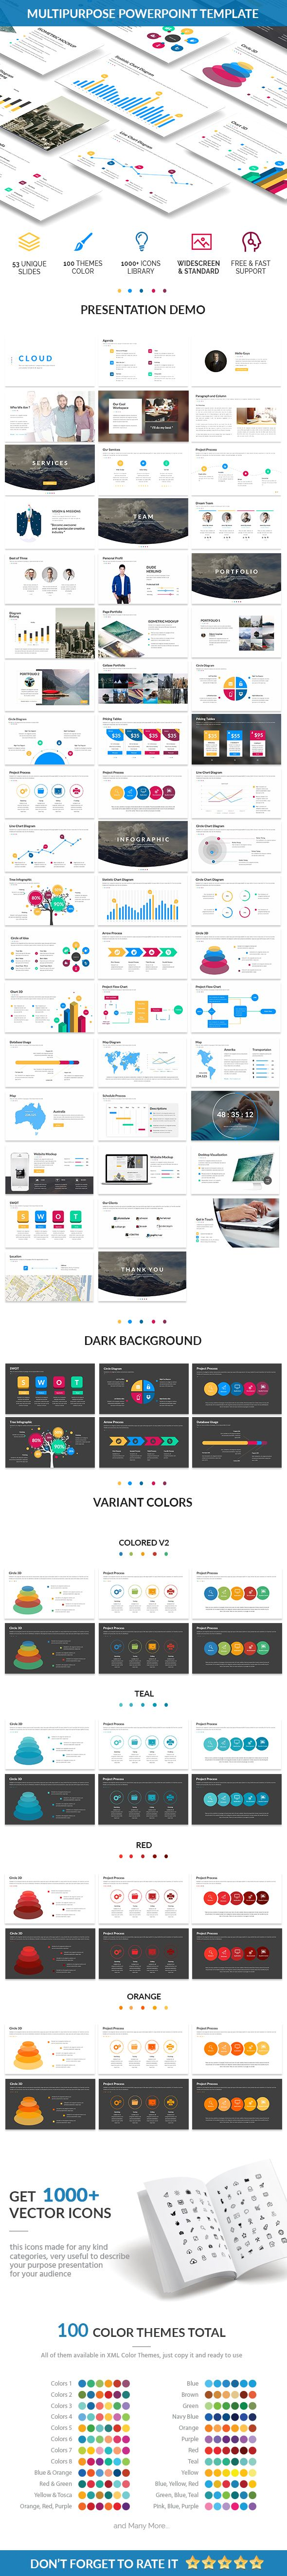 Omega Creative Powerpoint Template #pptx template #finance • Download ➝ https://graphicriver.net/item/omega-creative-powerpoint-template/18590695?ref=pxcr